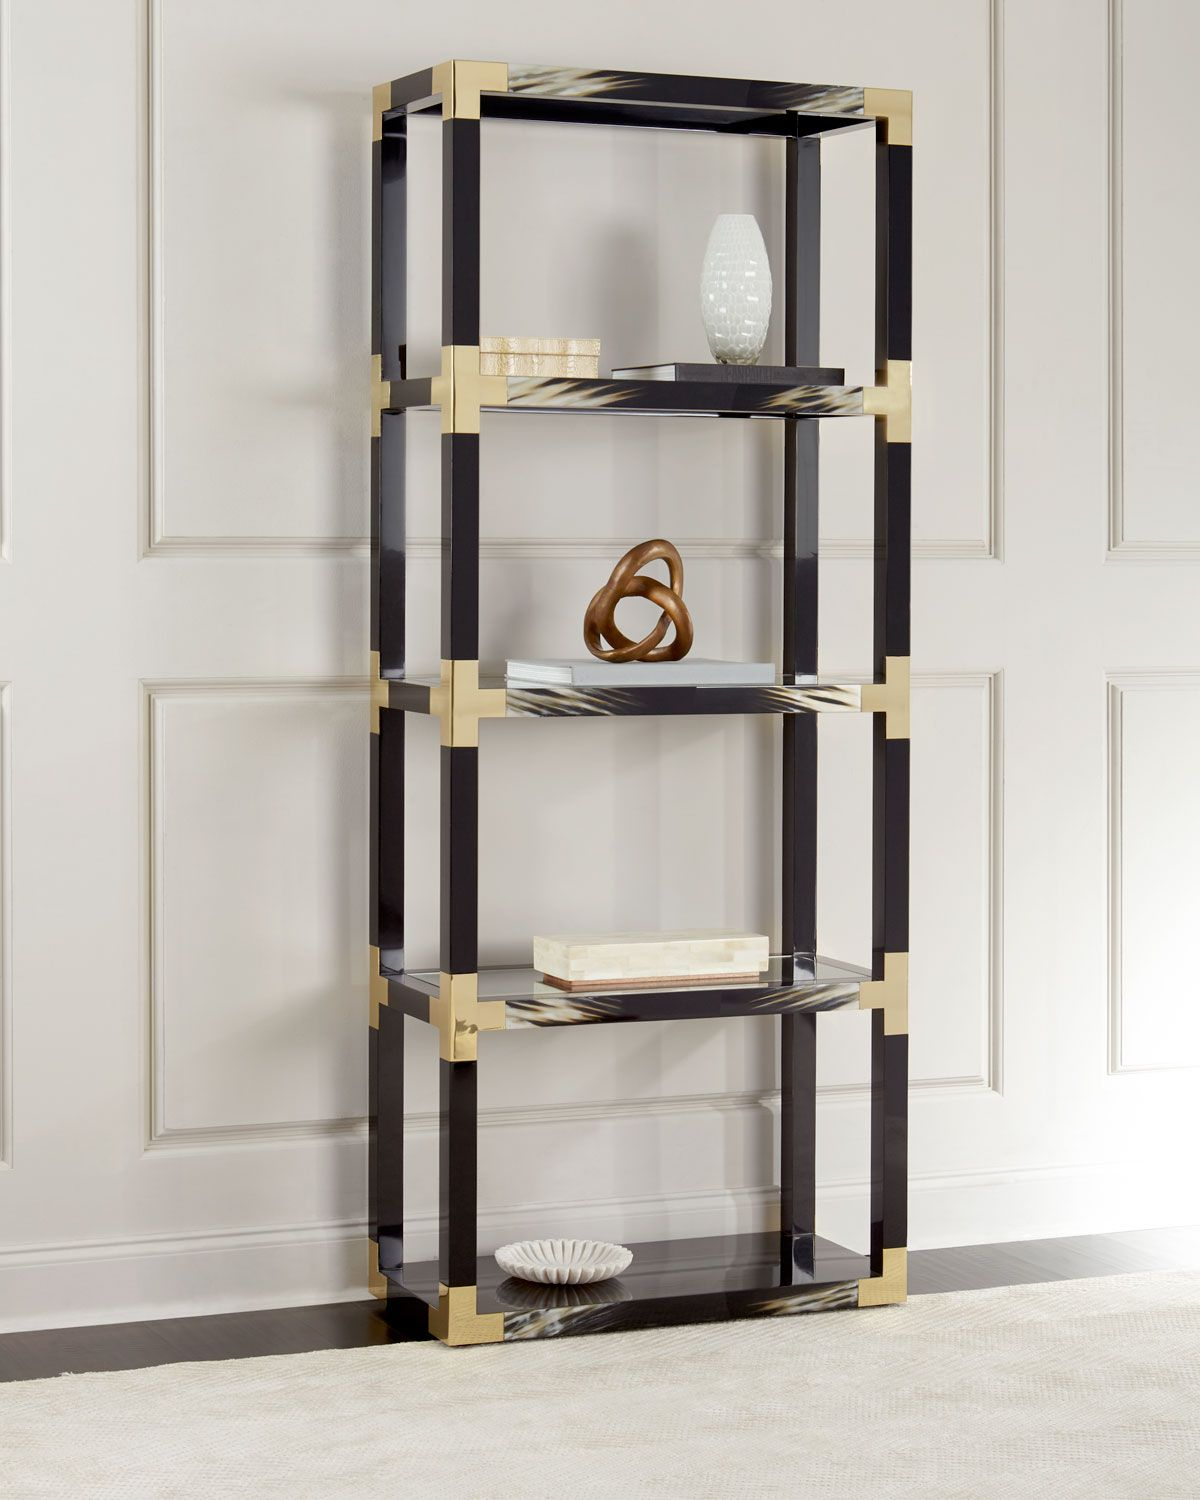 Blaise Etagere Interiors Nest And Storage Ideas # Etagere Vintage Plexiglas